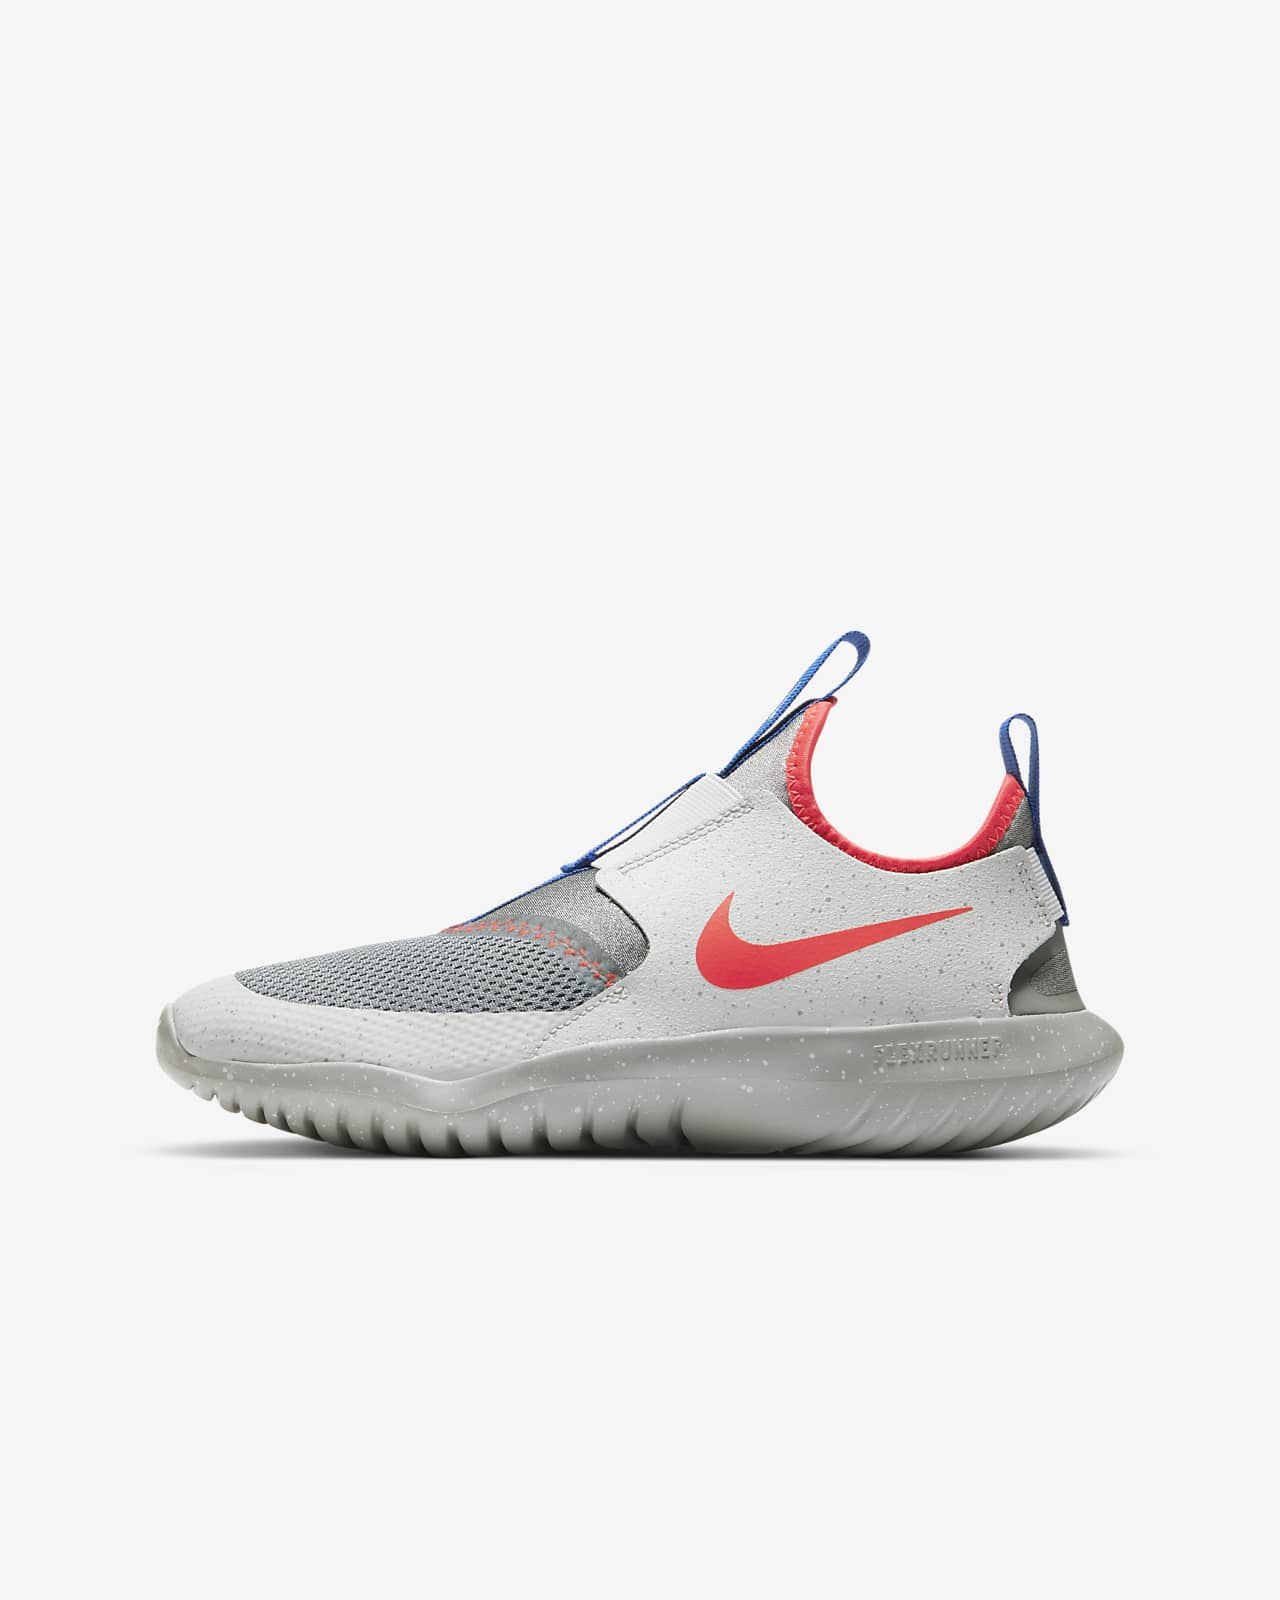 Nike Flex Runner SE Big Kids' Running Shoe